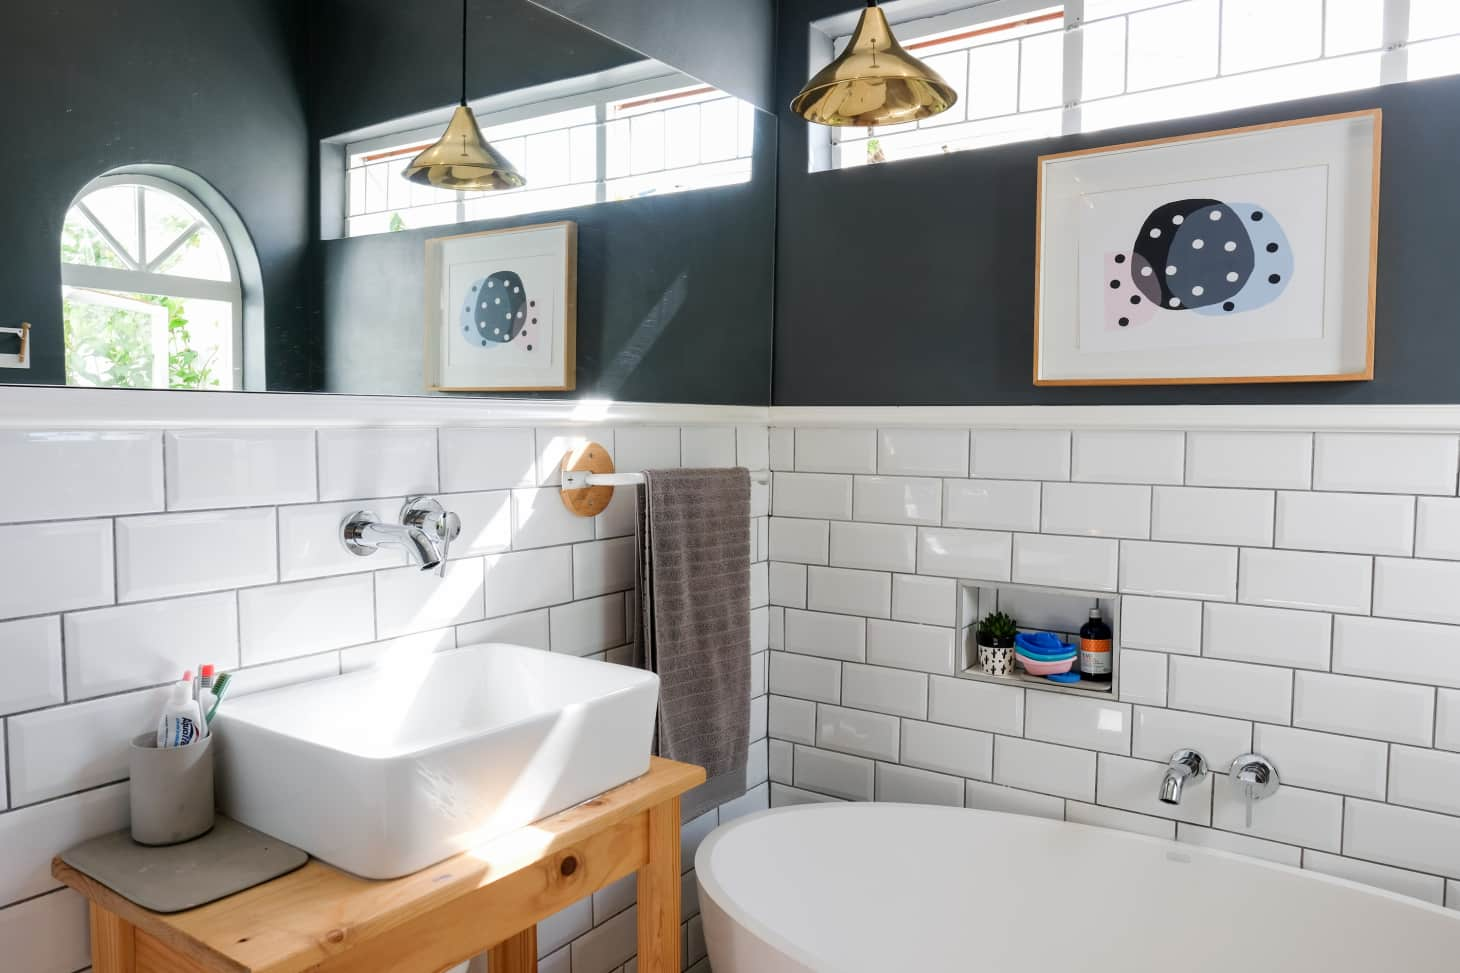 Small Bathroom Design & Storage Ideas | Apartment Therapy